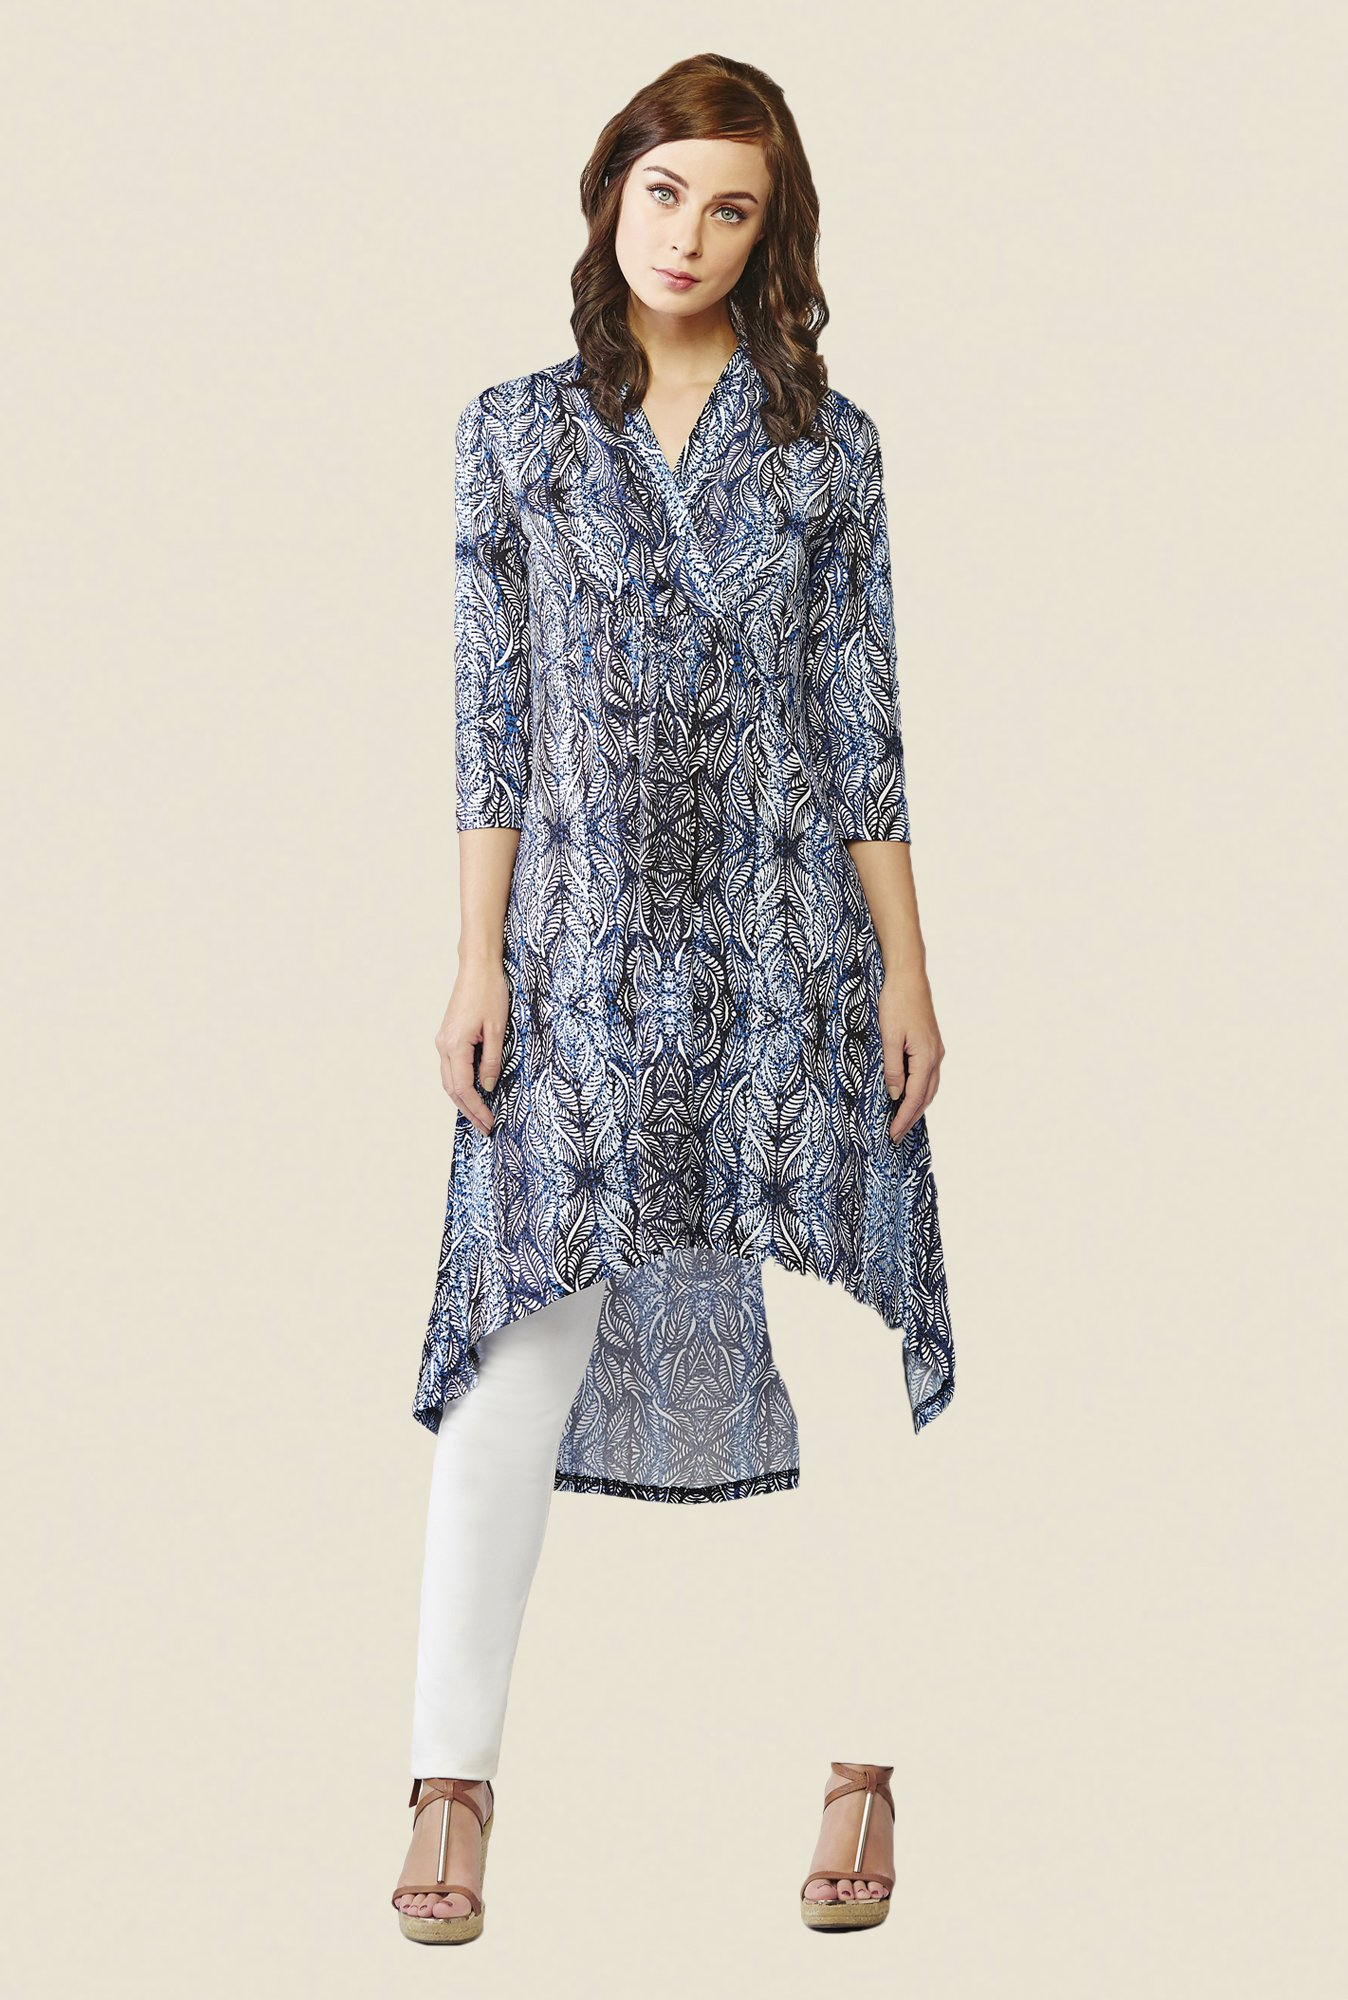 AND Blue & Black Printed Tunic